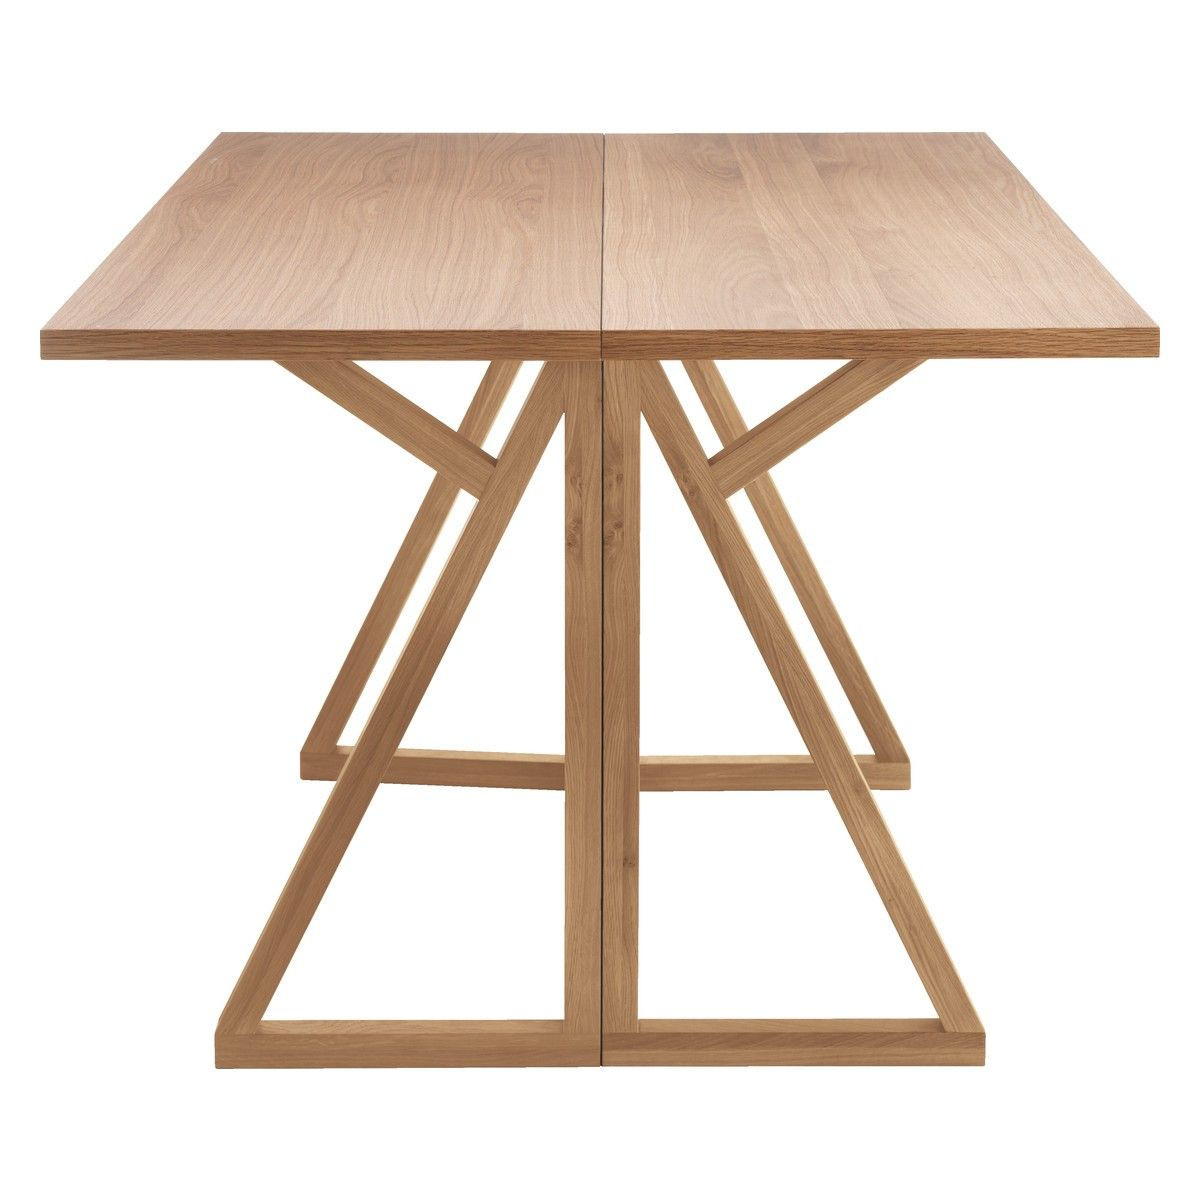 Best ideas about Folding Dining Table . Save or Pin HEATH 2 4 seat oak folding dining table Designed in house Now.